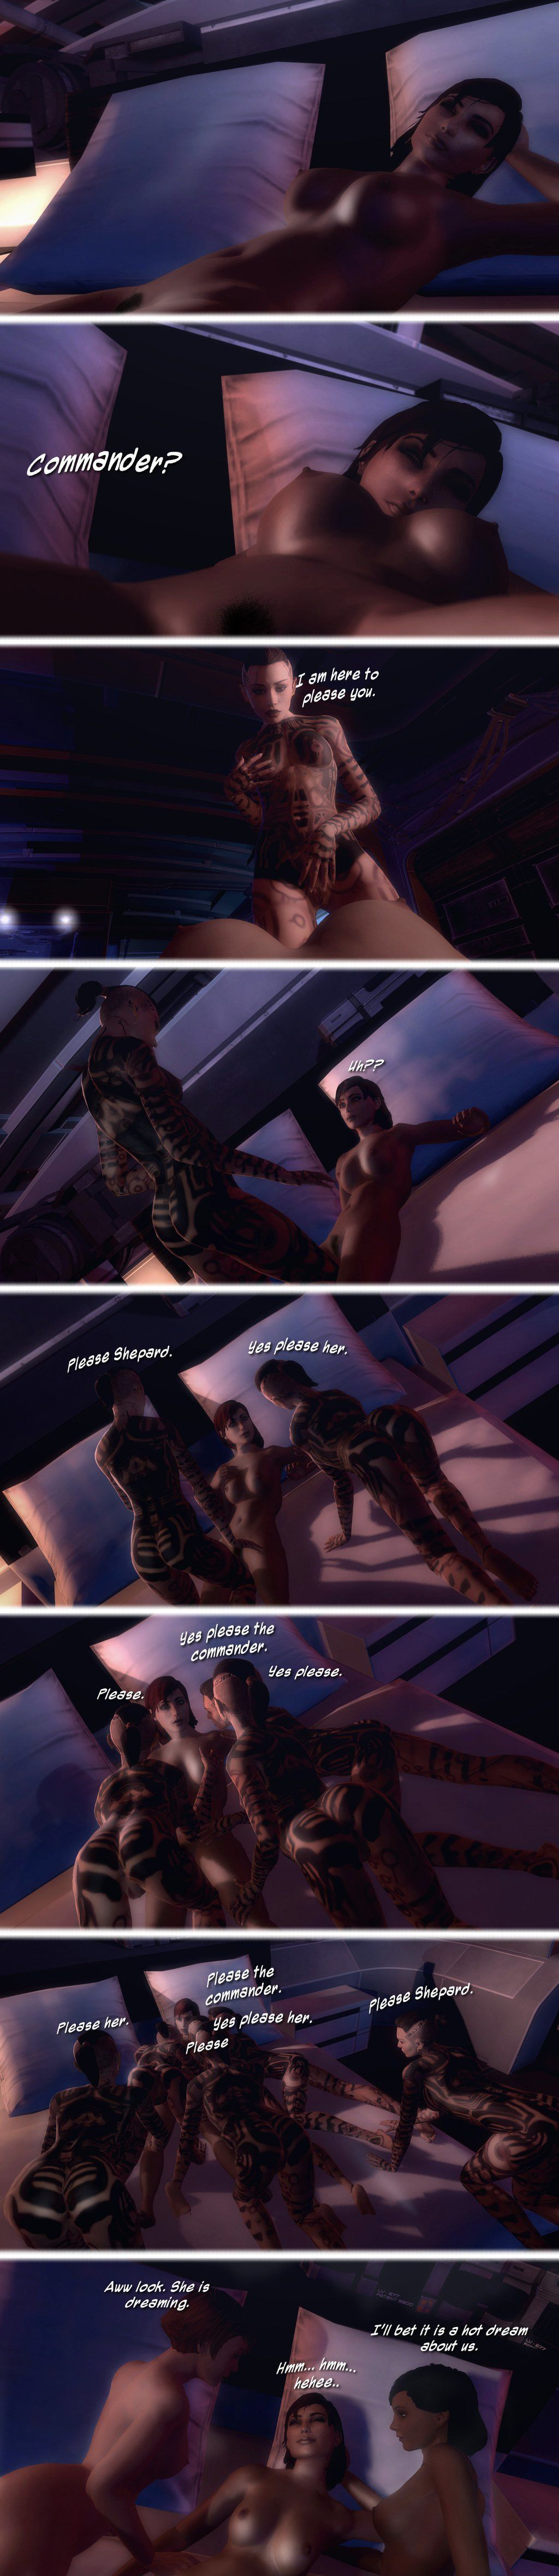 Updated gallery of the works of Rastifan Pt 2 (Comic Shorts) - part 7